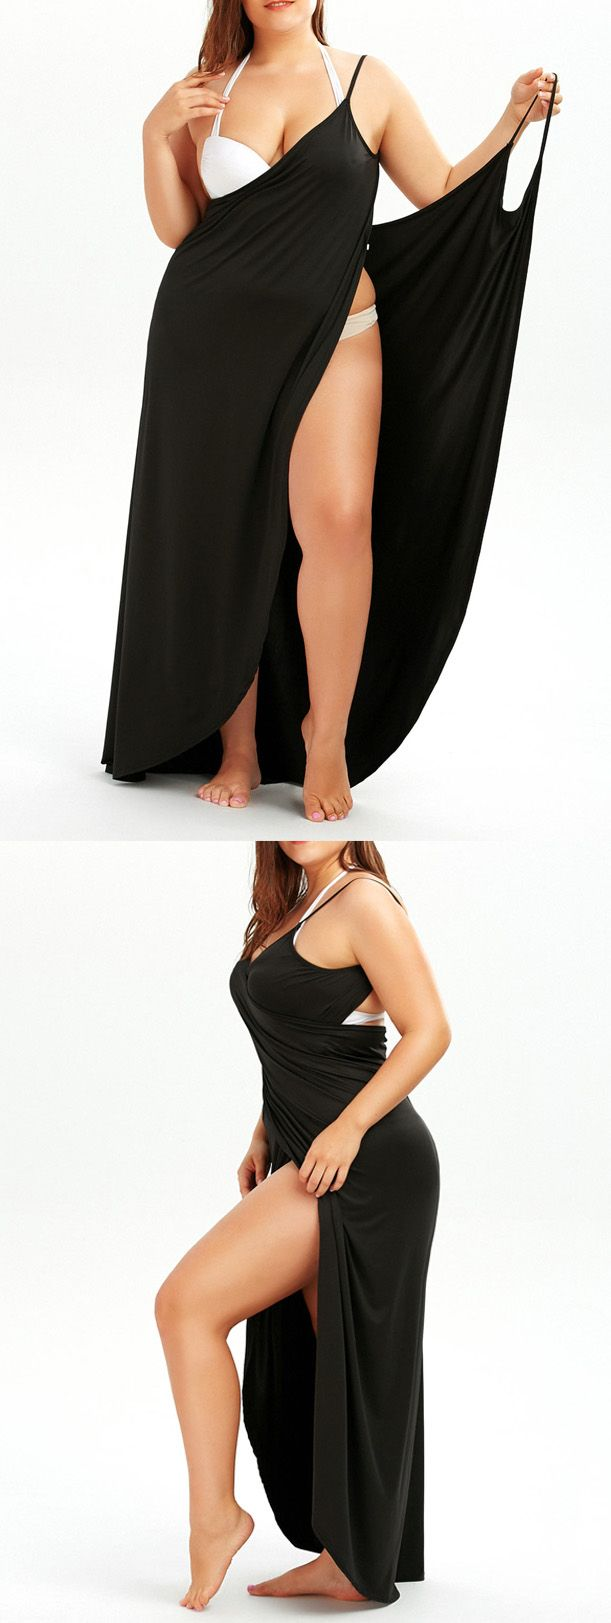 $9.87 Plus Size Slip Wrap Cover Up Dress